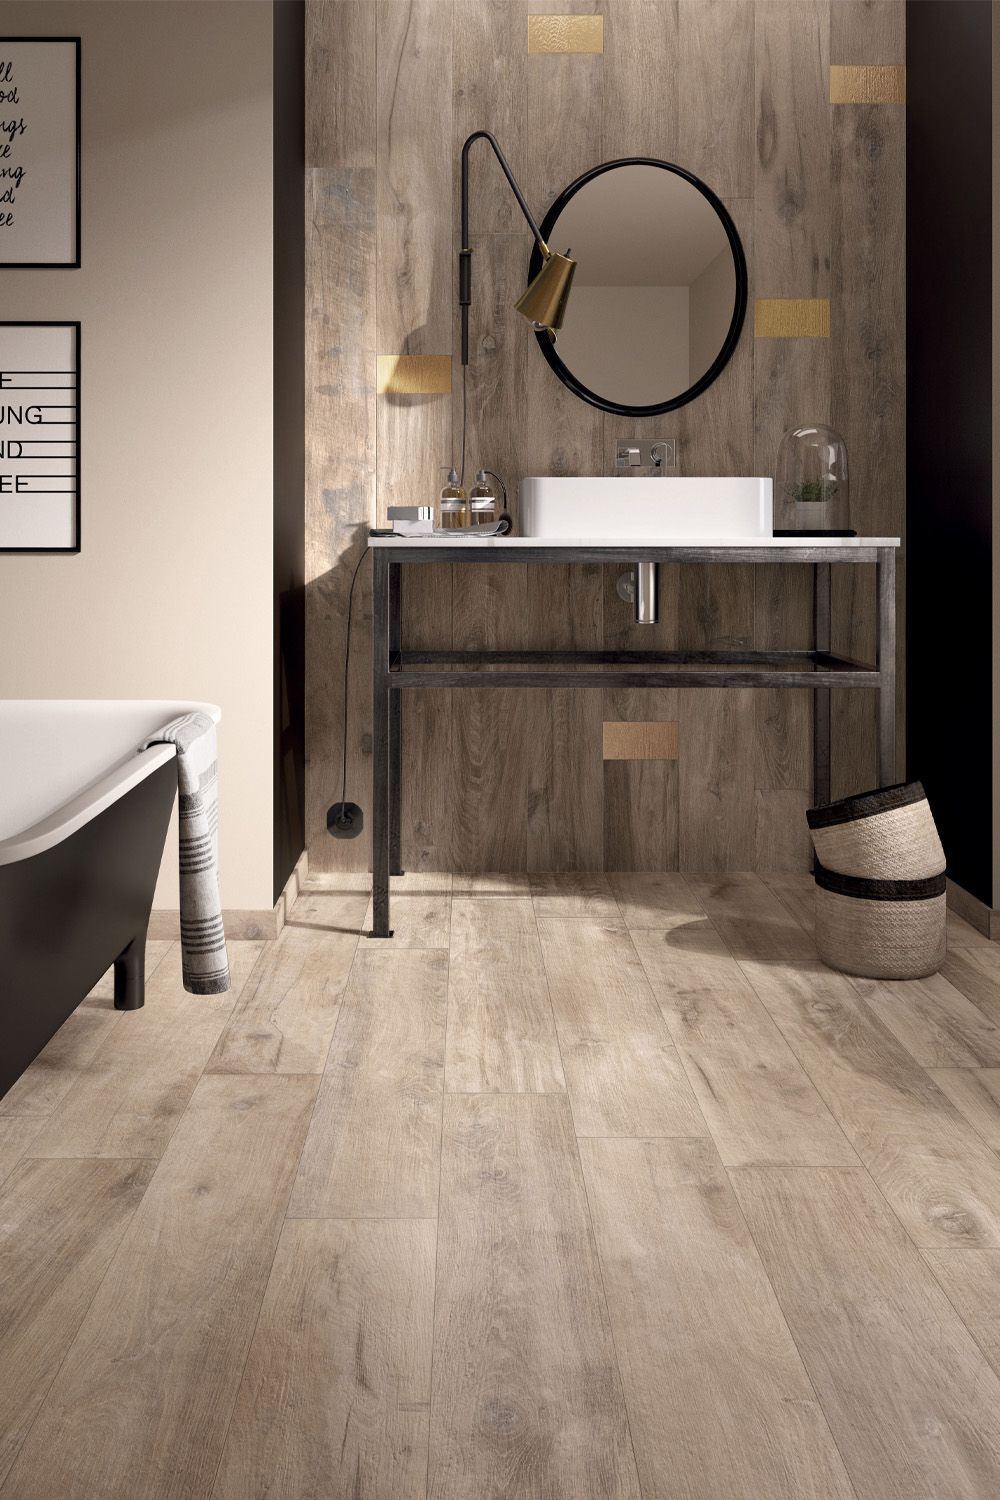 New Now Light Hardwood Floors In 2020 Wood Tile Bathroom Bathroom Floor Tiles Wood Tile Bathroom Floor